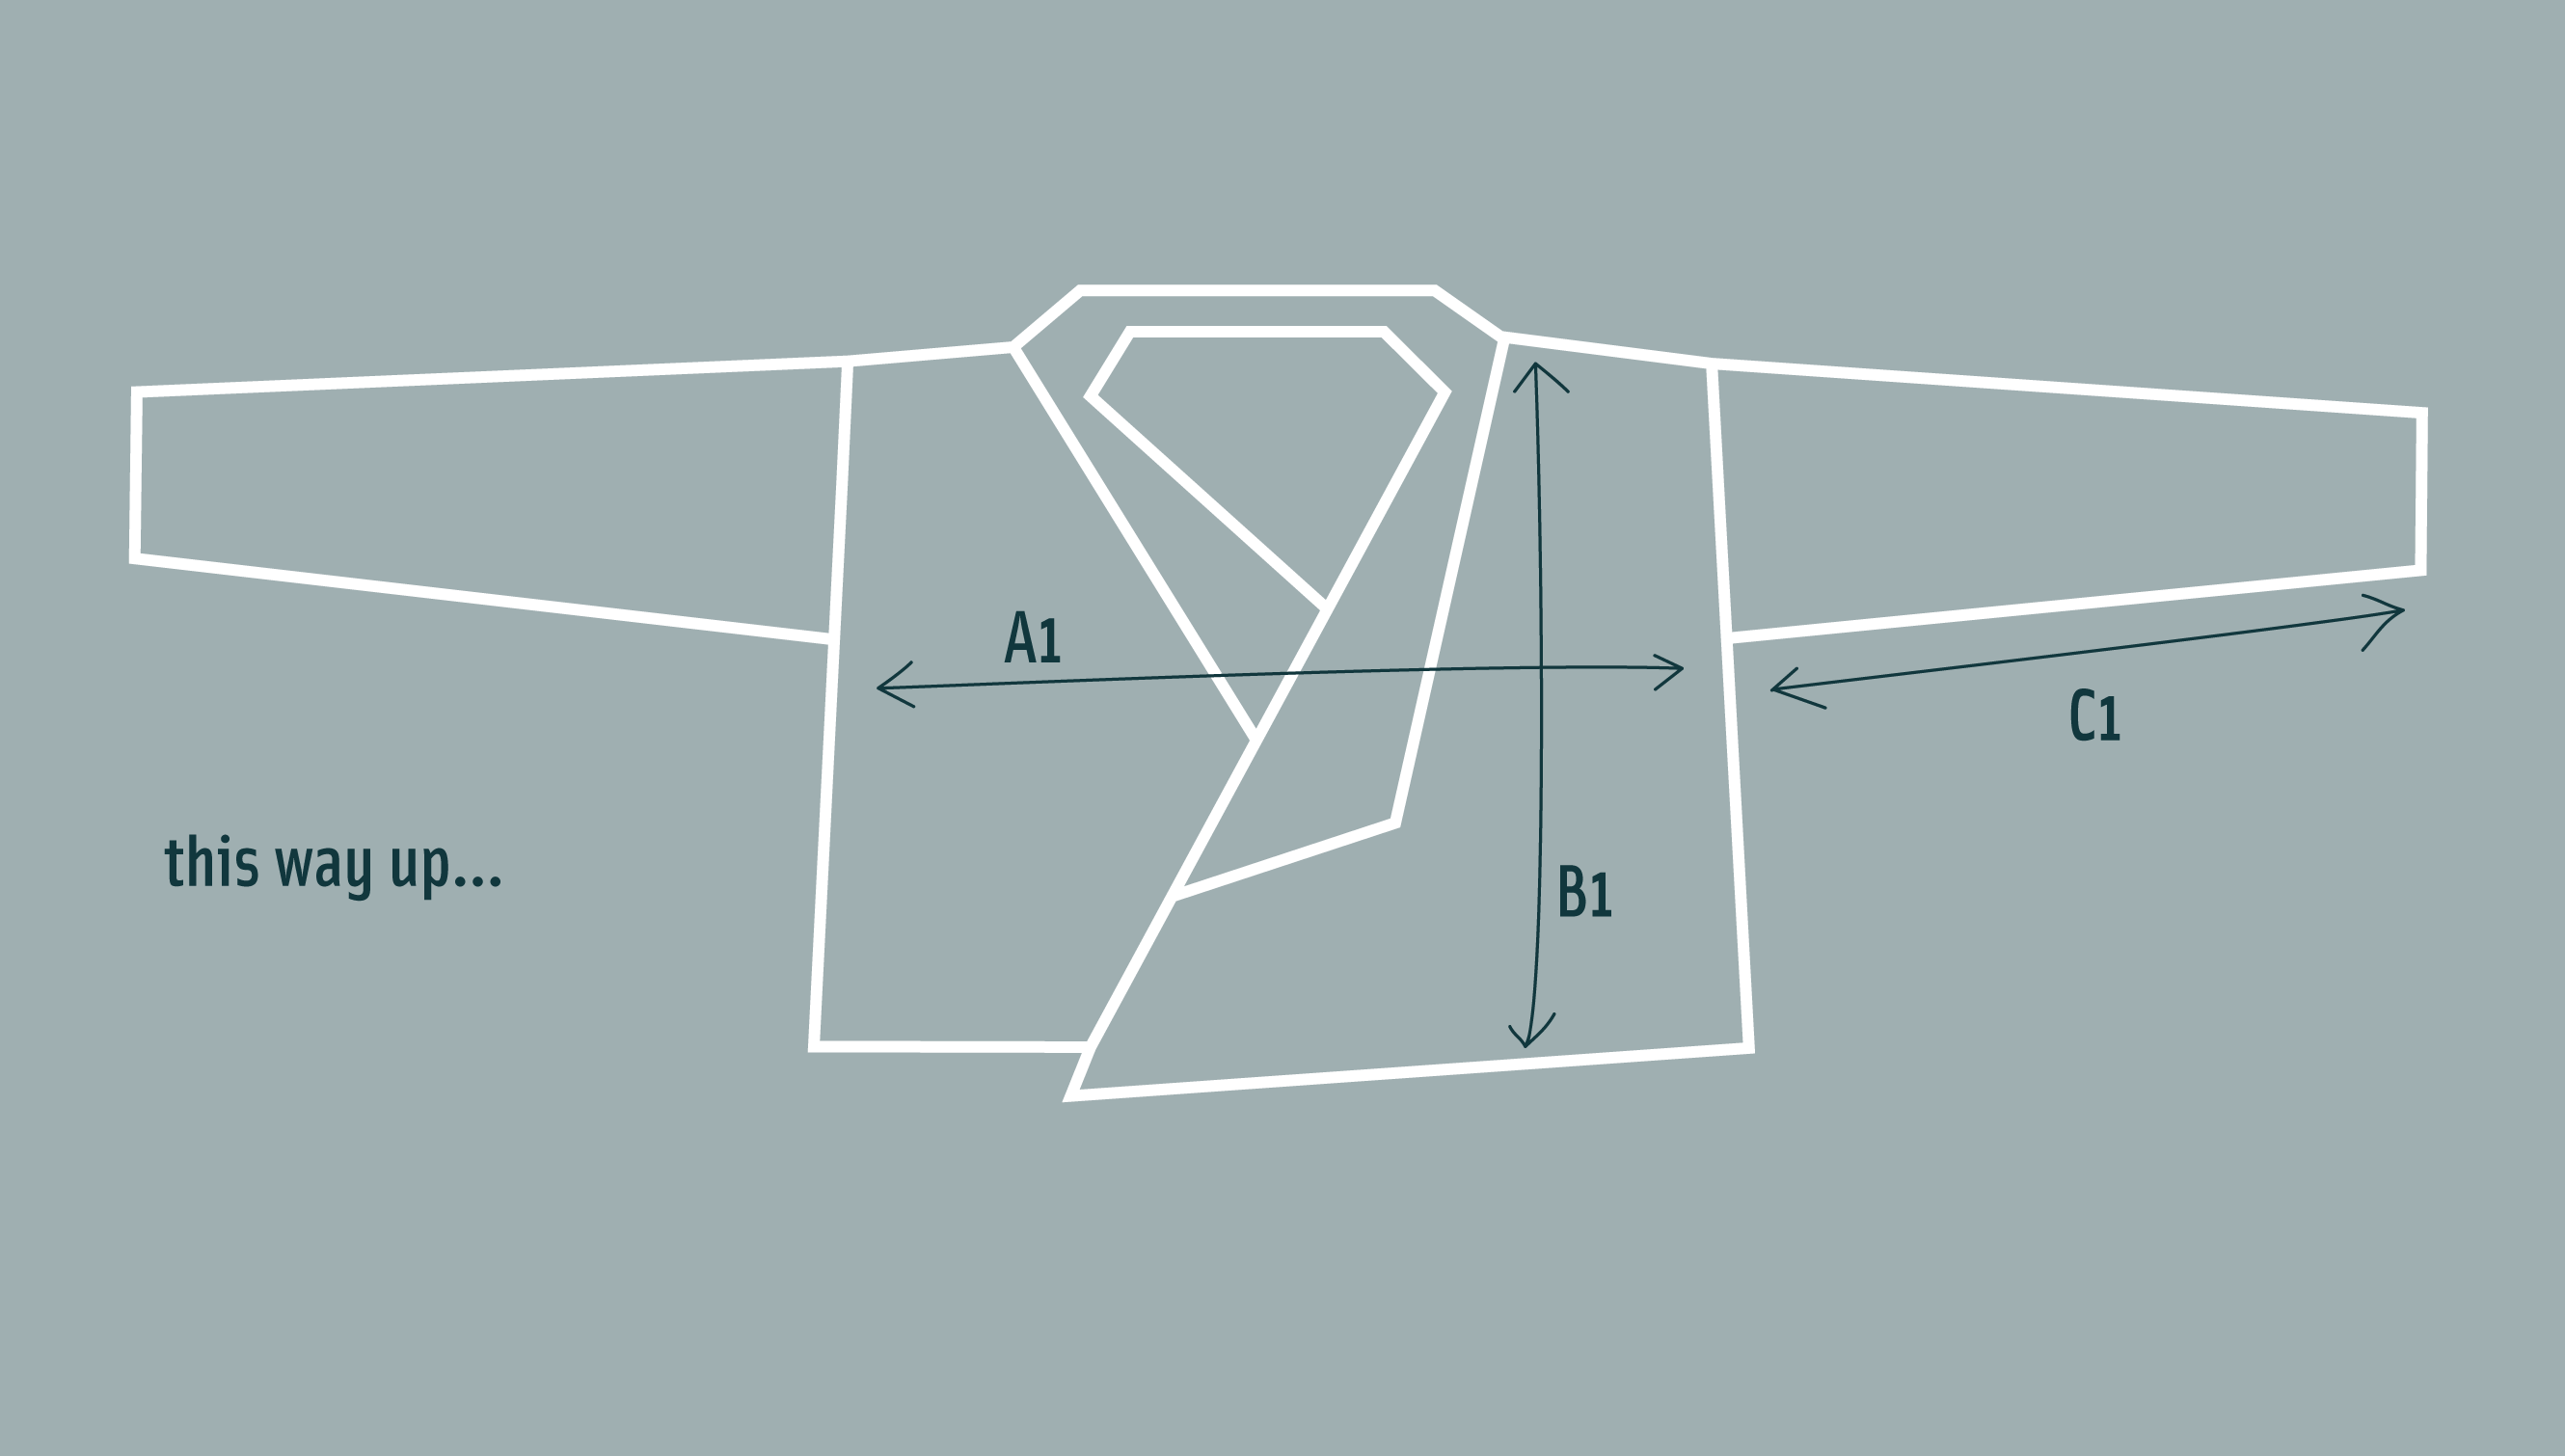 Rigg Shetland cardigan worn the shorter way - diagram to show dimensions and shape